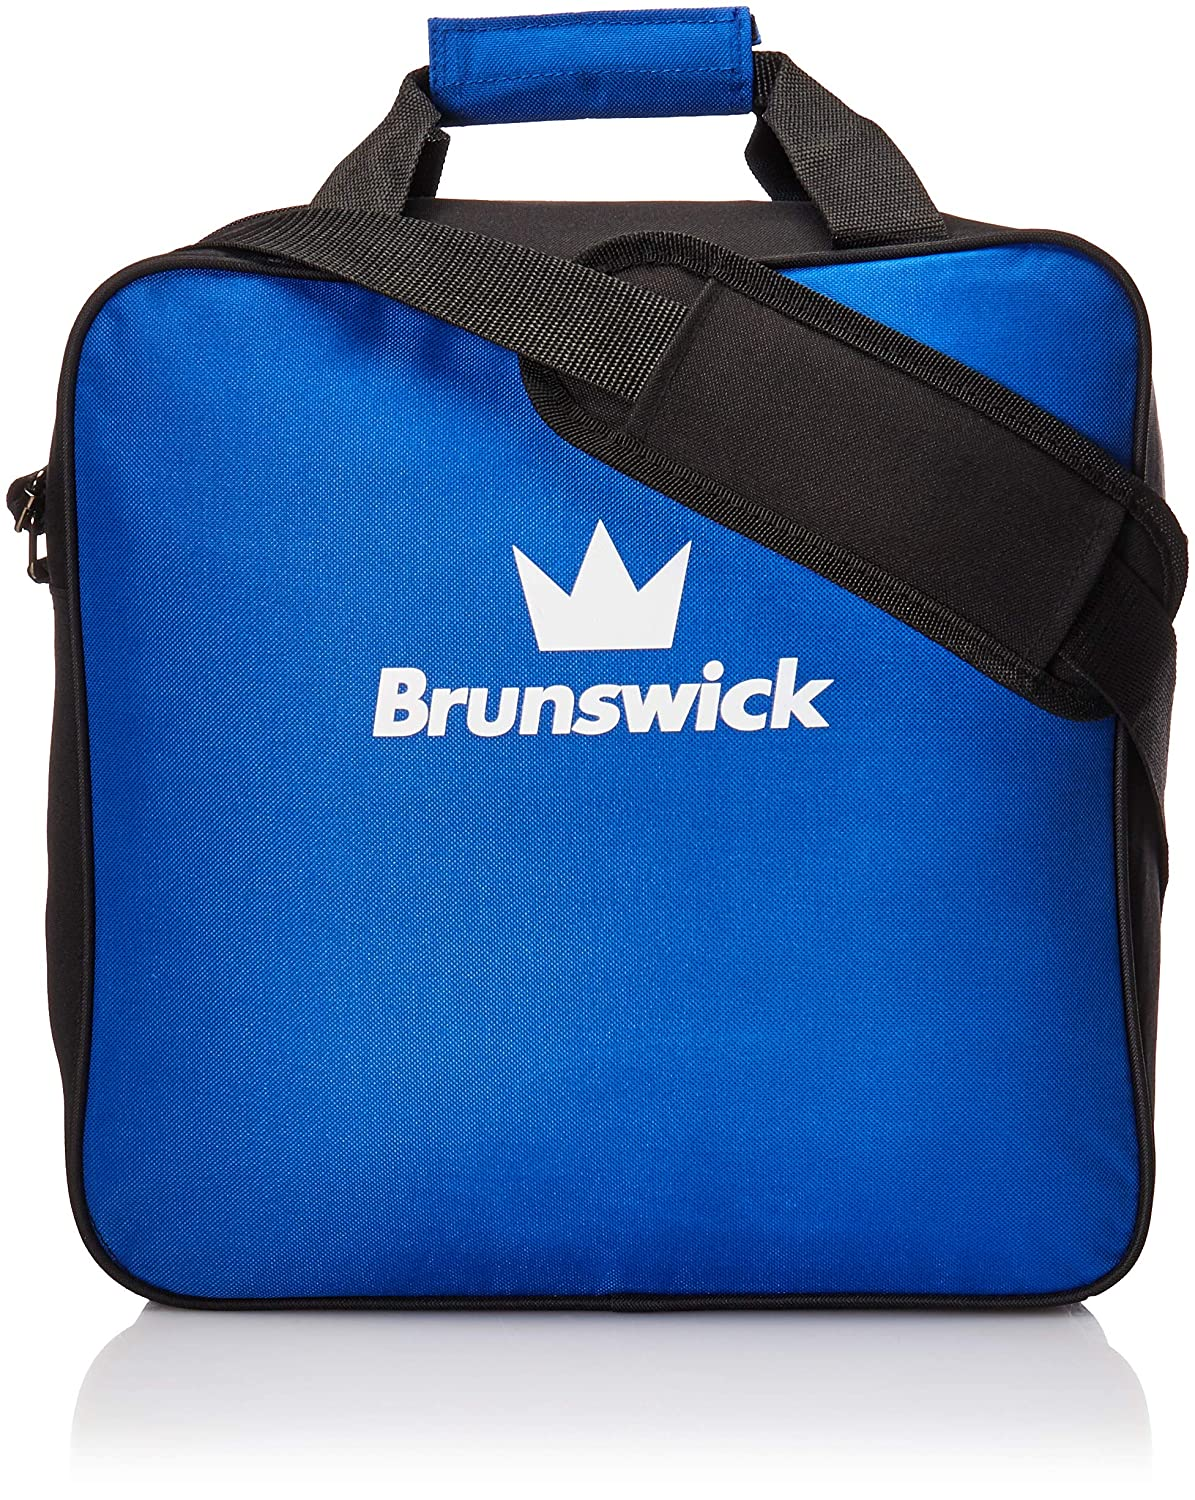 New Brunswick Bowling >> Amazon Com Brunswick Tzone Single Tote Bowling Bag Blue